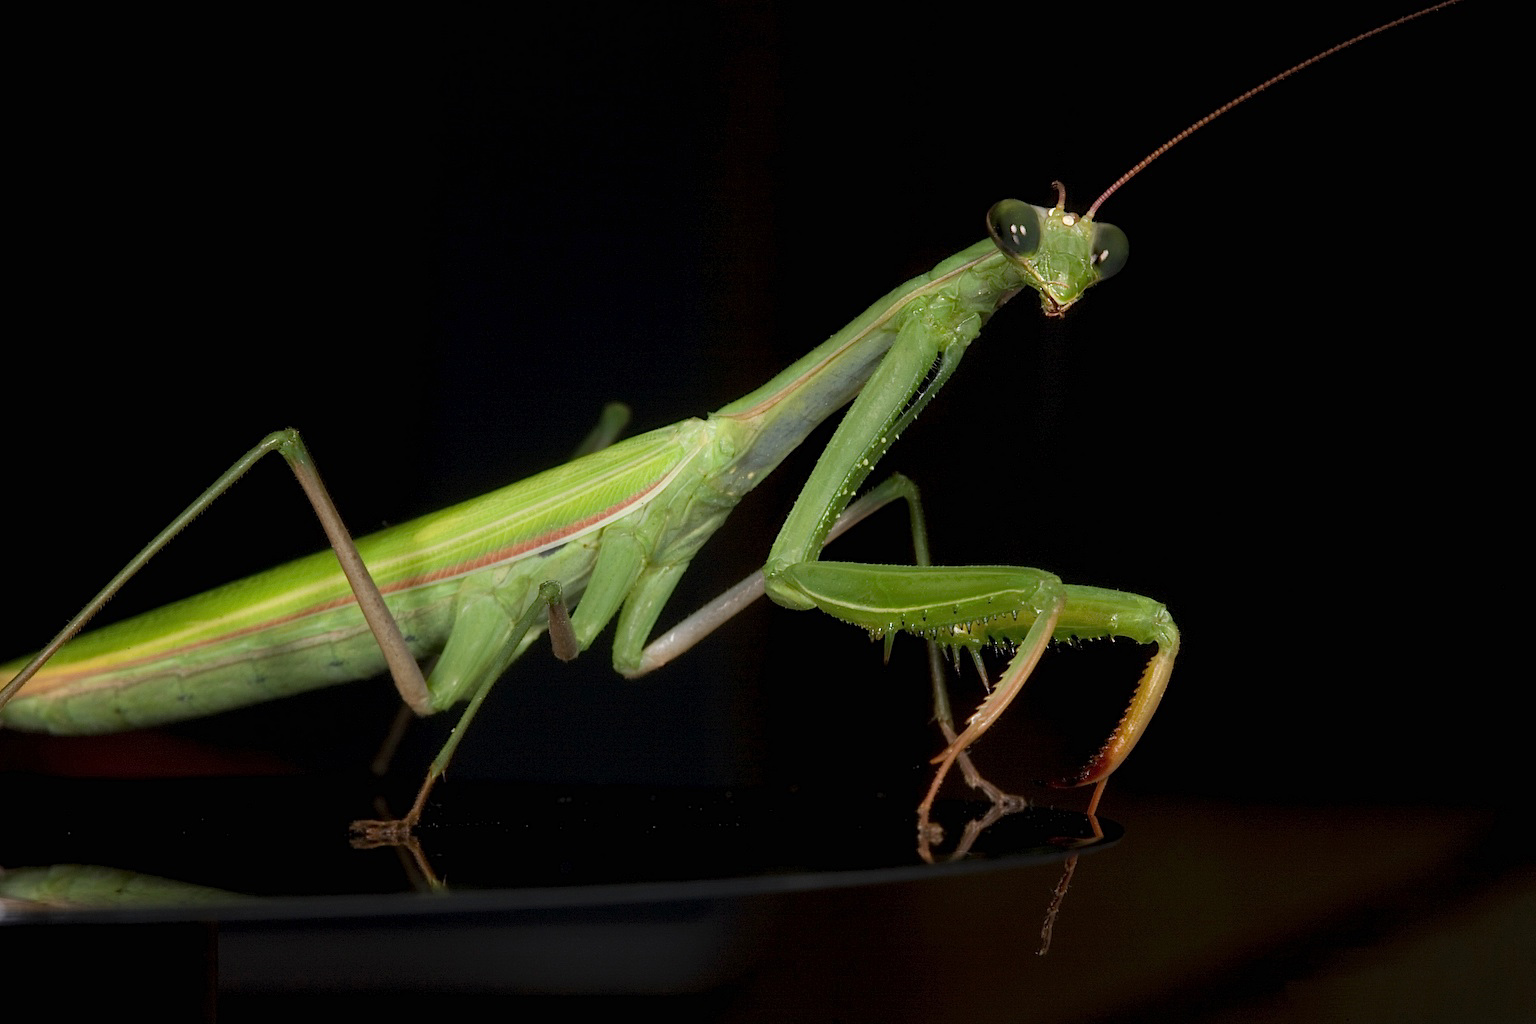 Praying_Mantis_Male_European-42.jpg